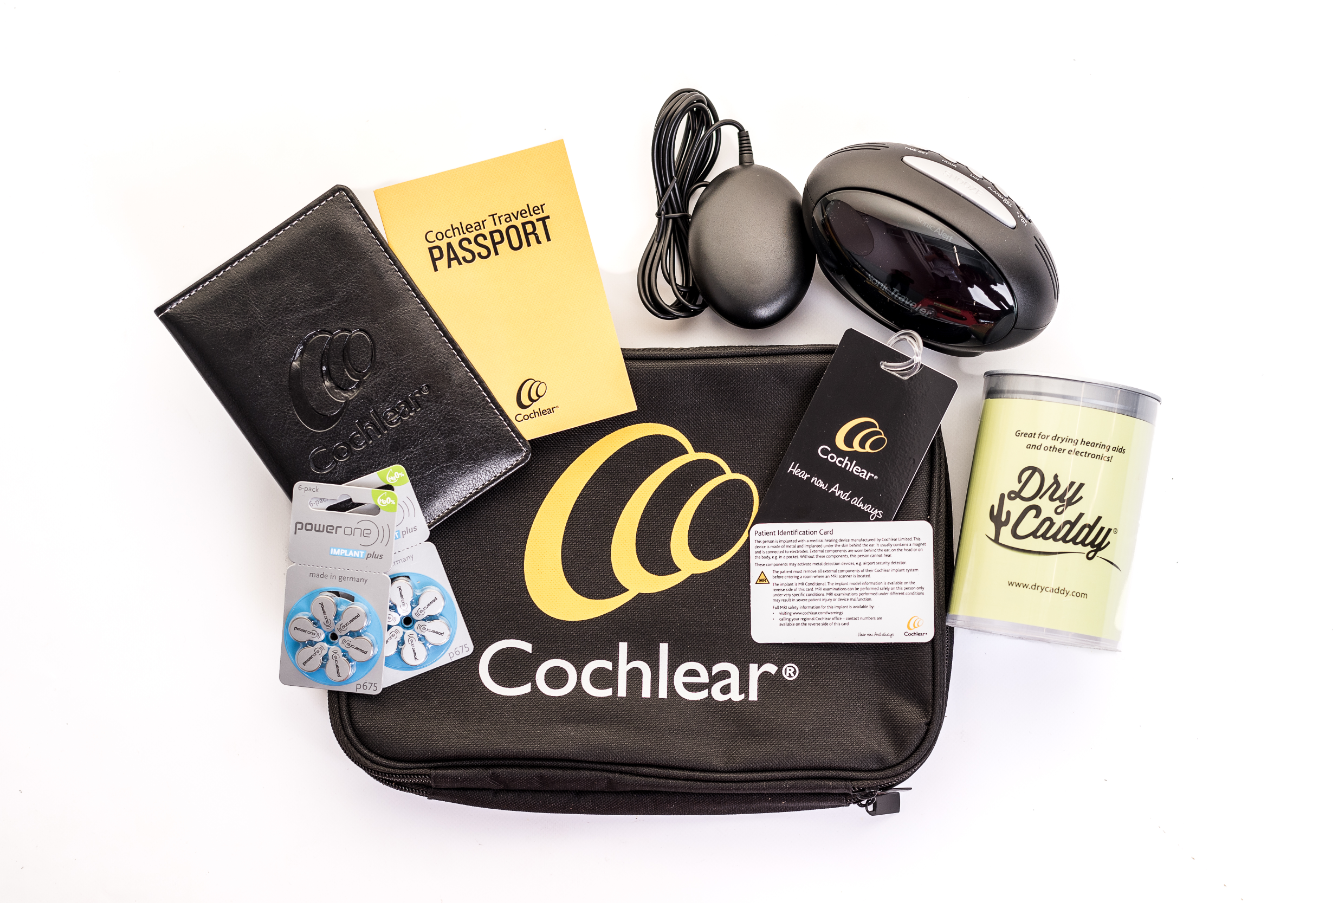 Cochlear Traveler Kits